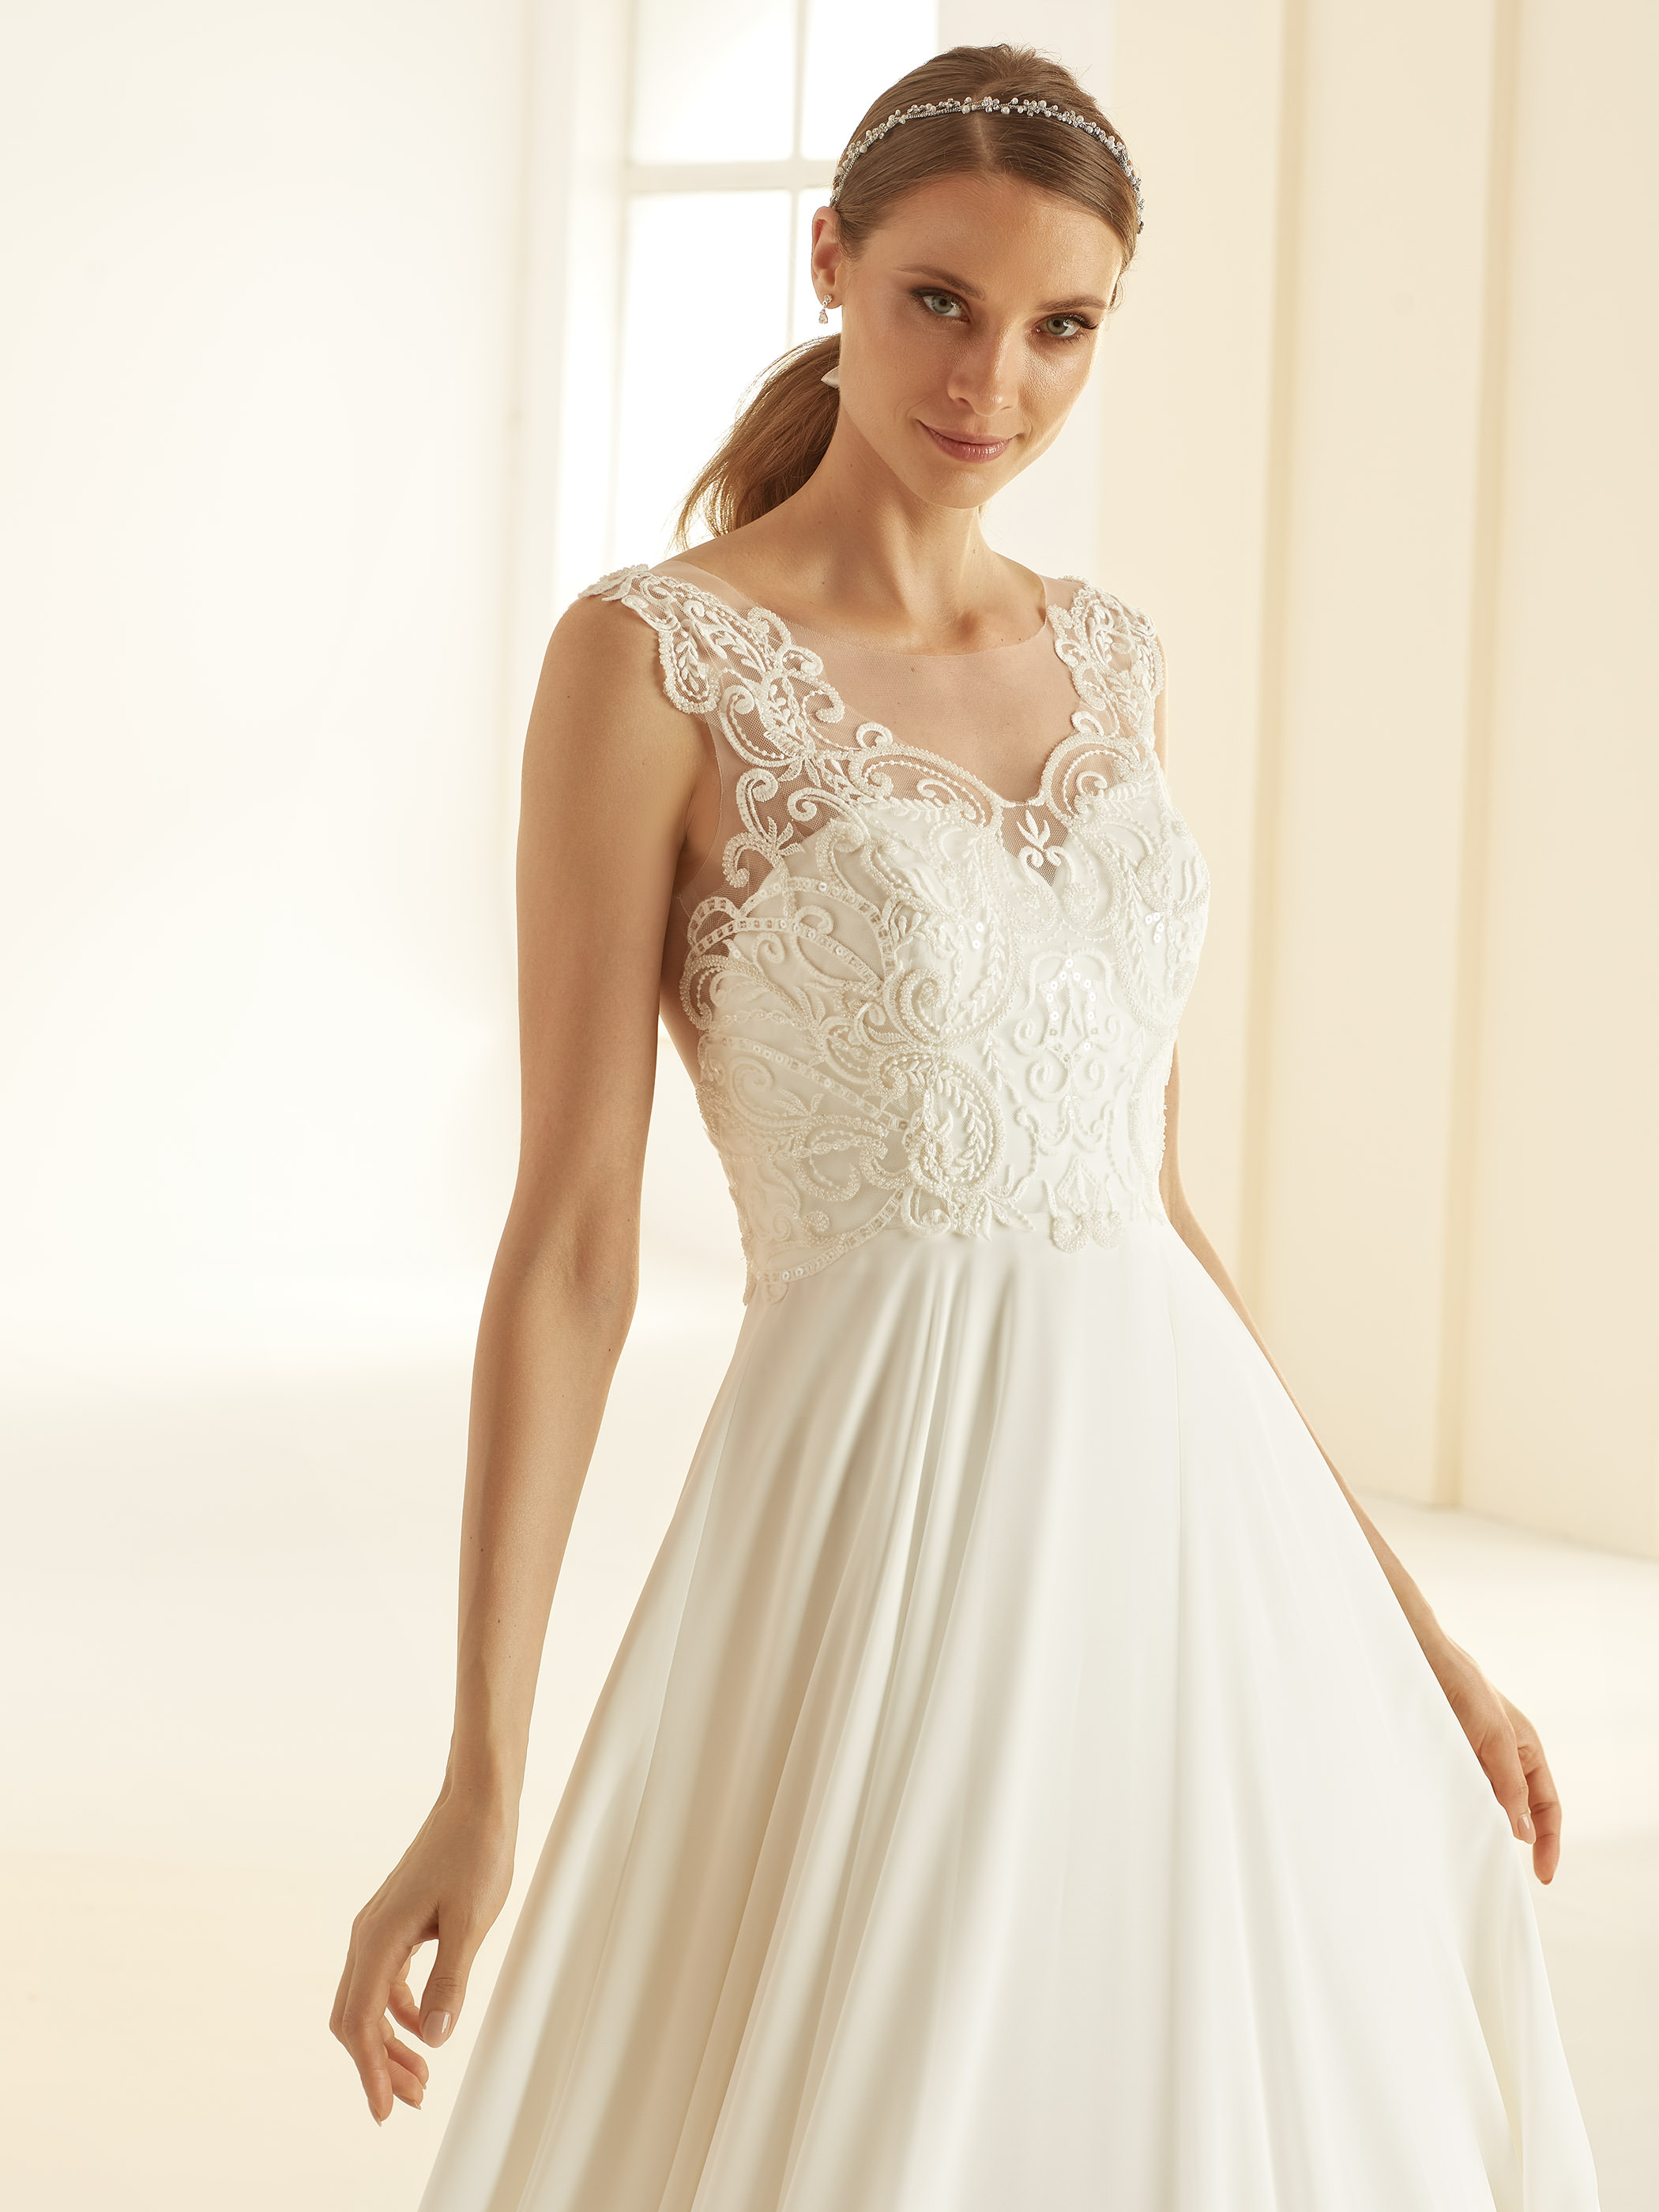 PANDORA_ivory-Bianco-Evento-bridal-dress-(2)